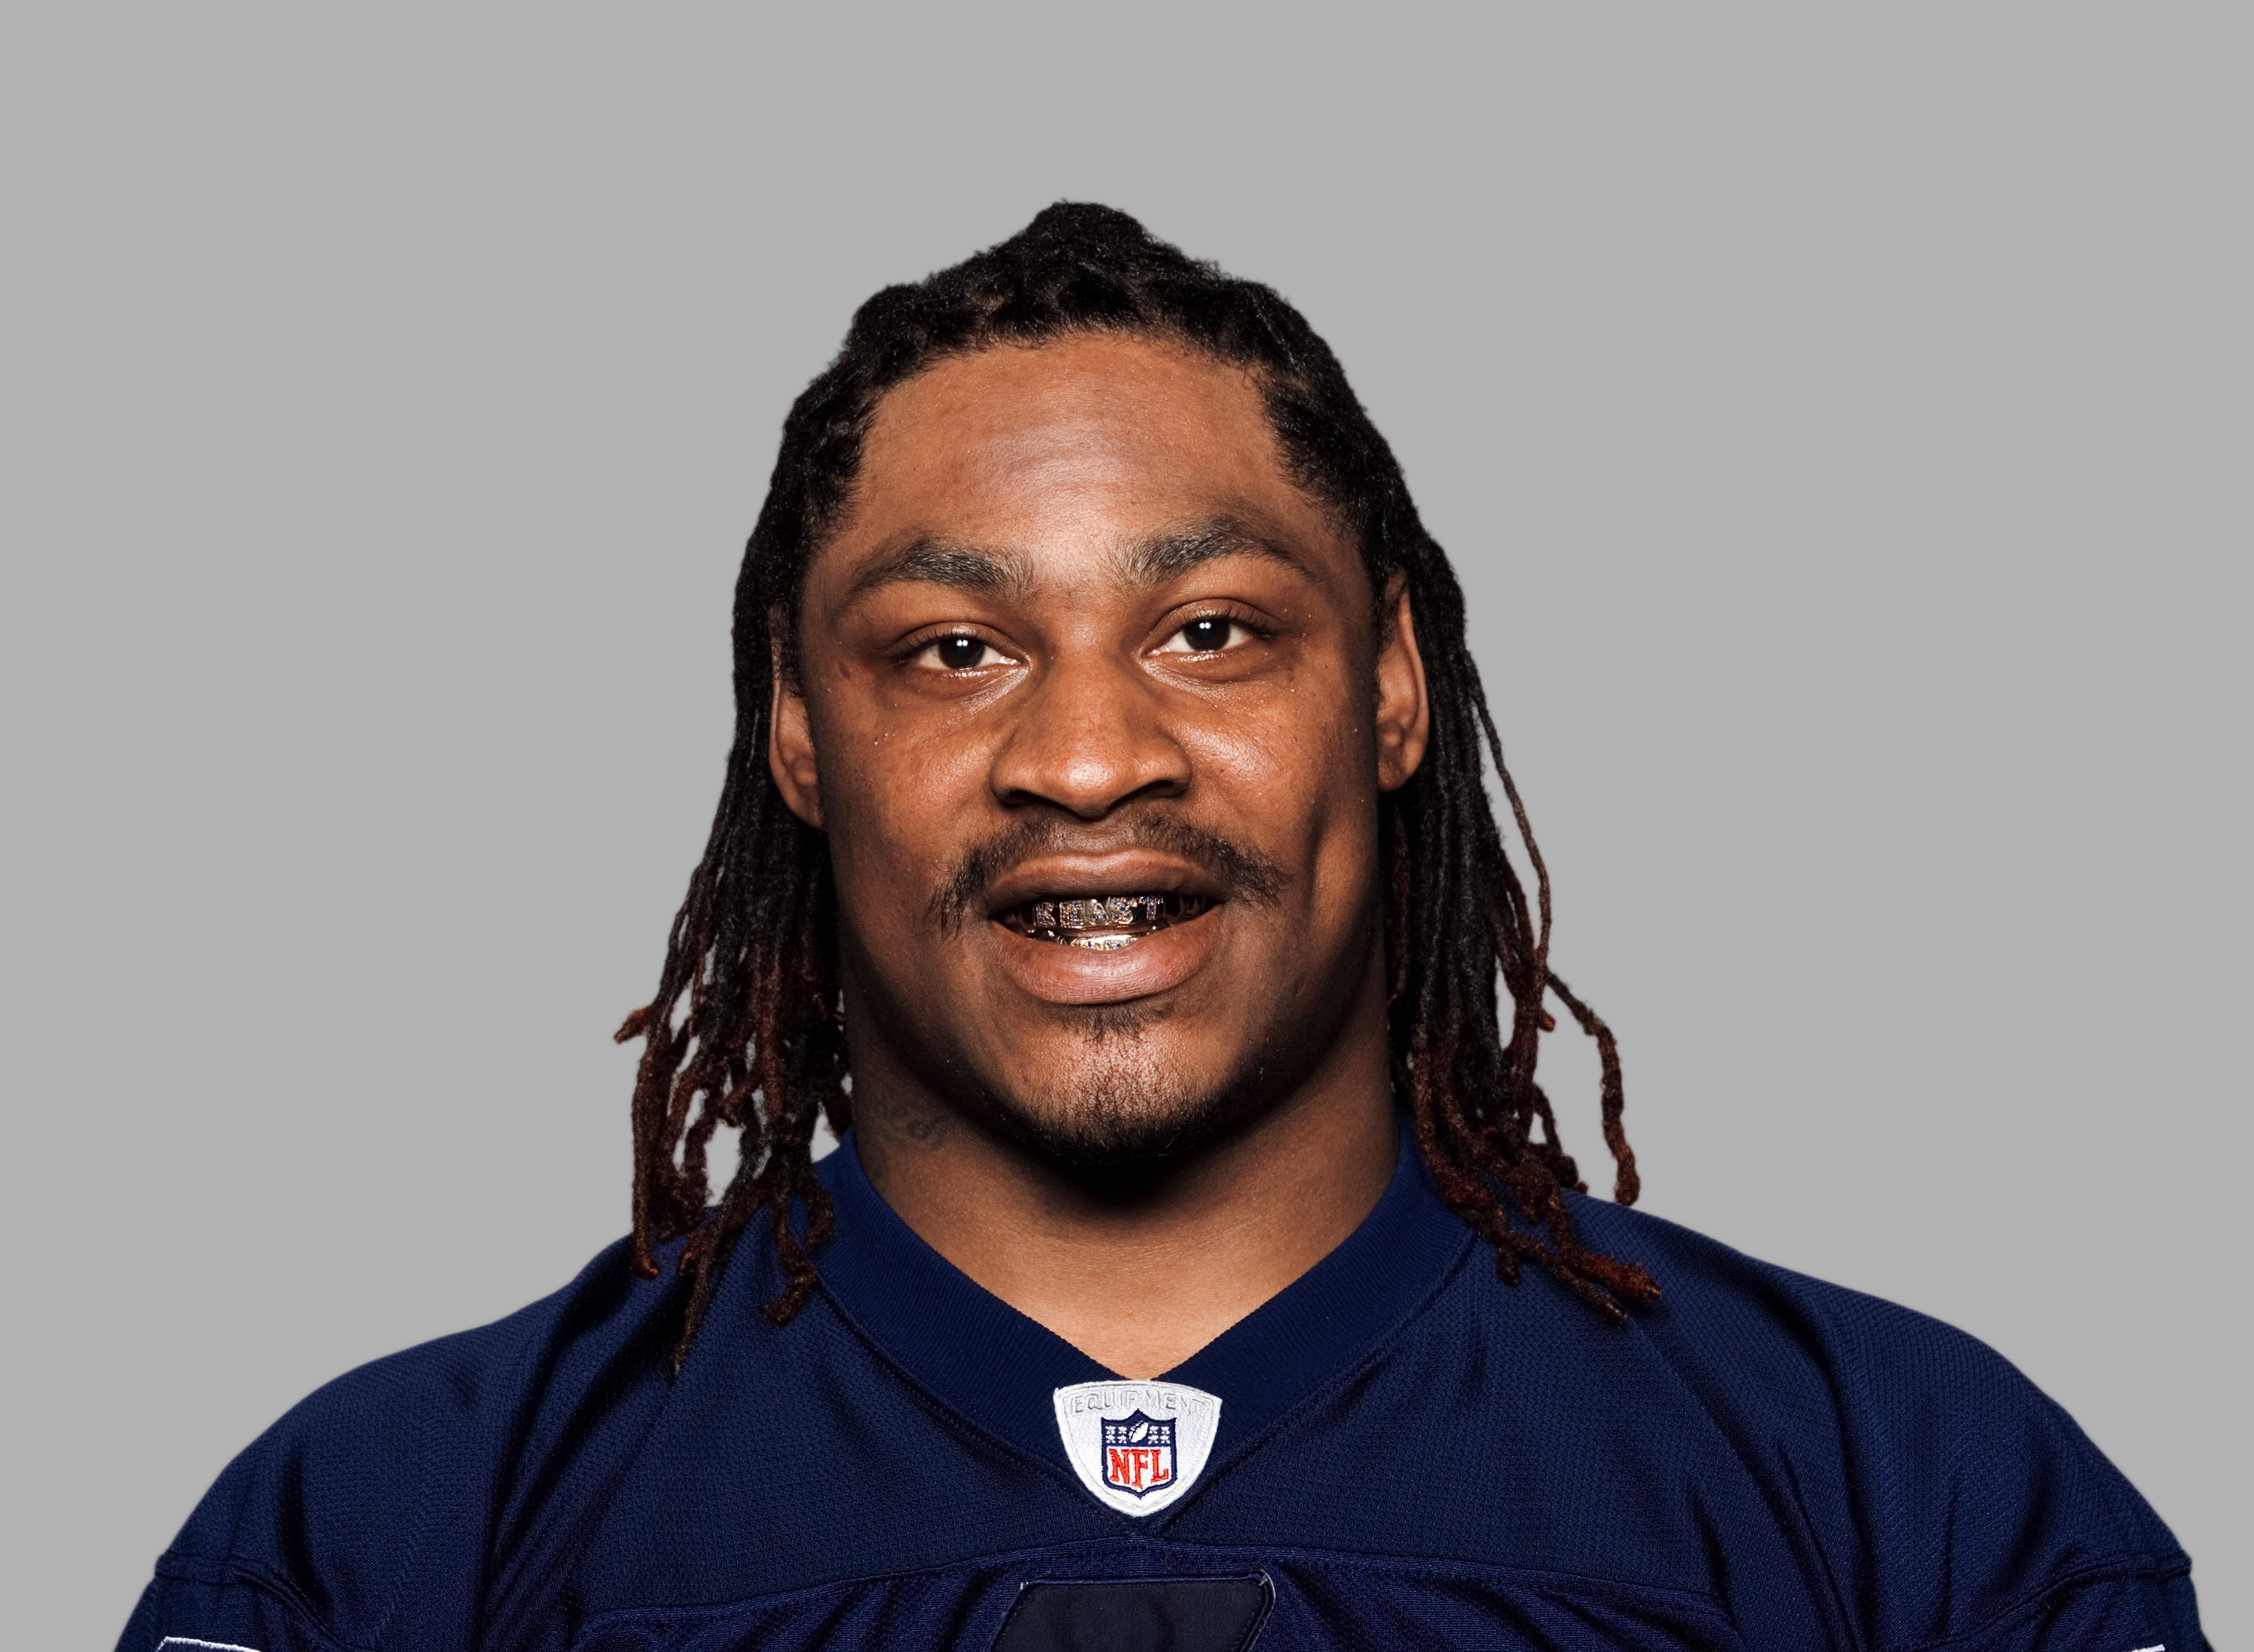 Nfl Top 10 Ugliest Players In League History Bleacher